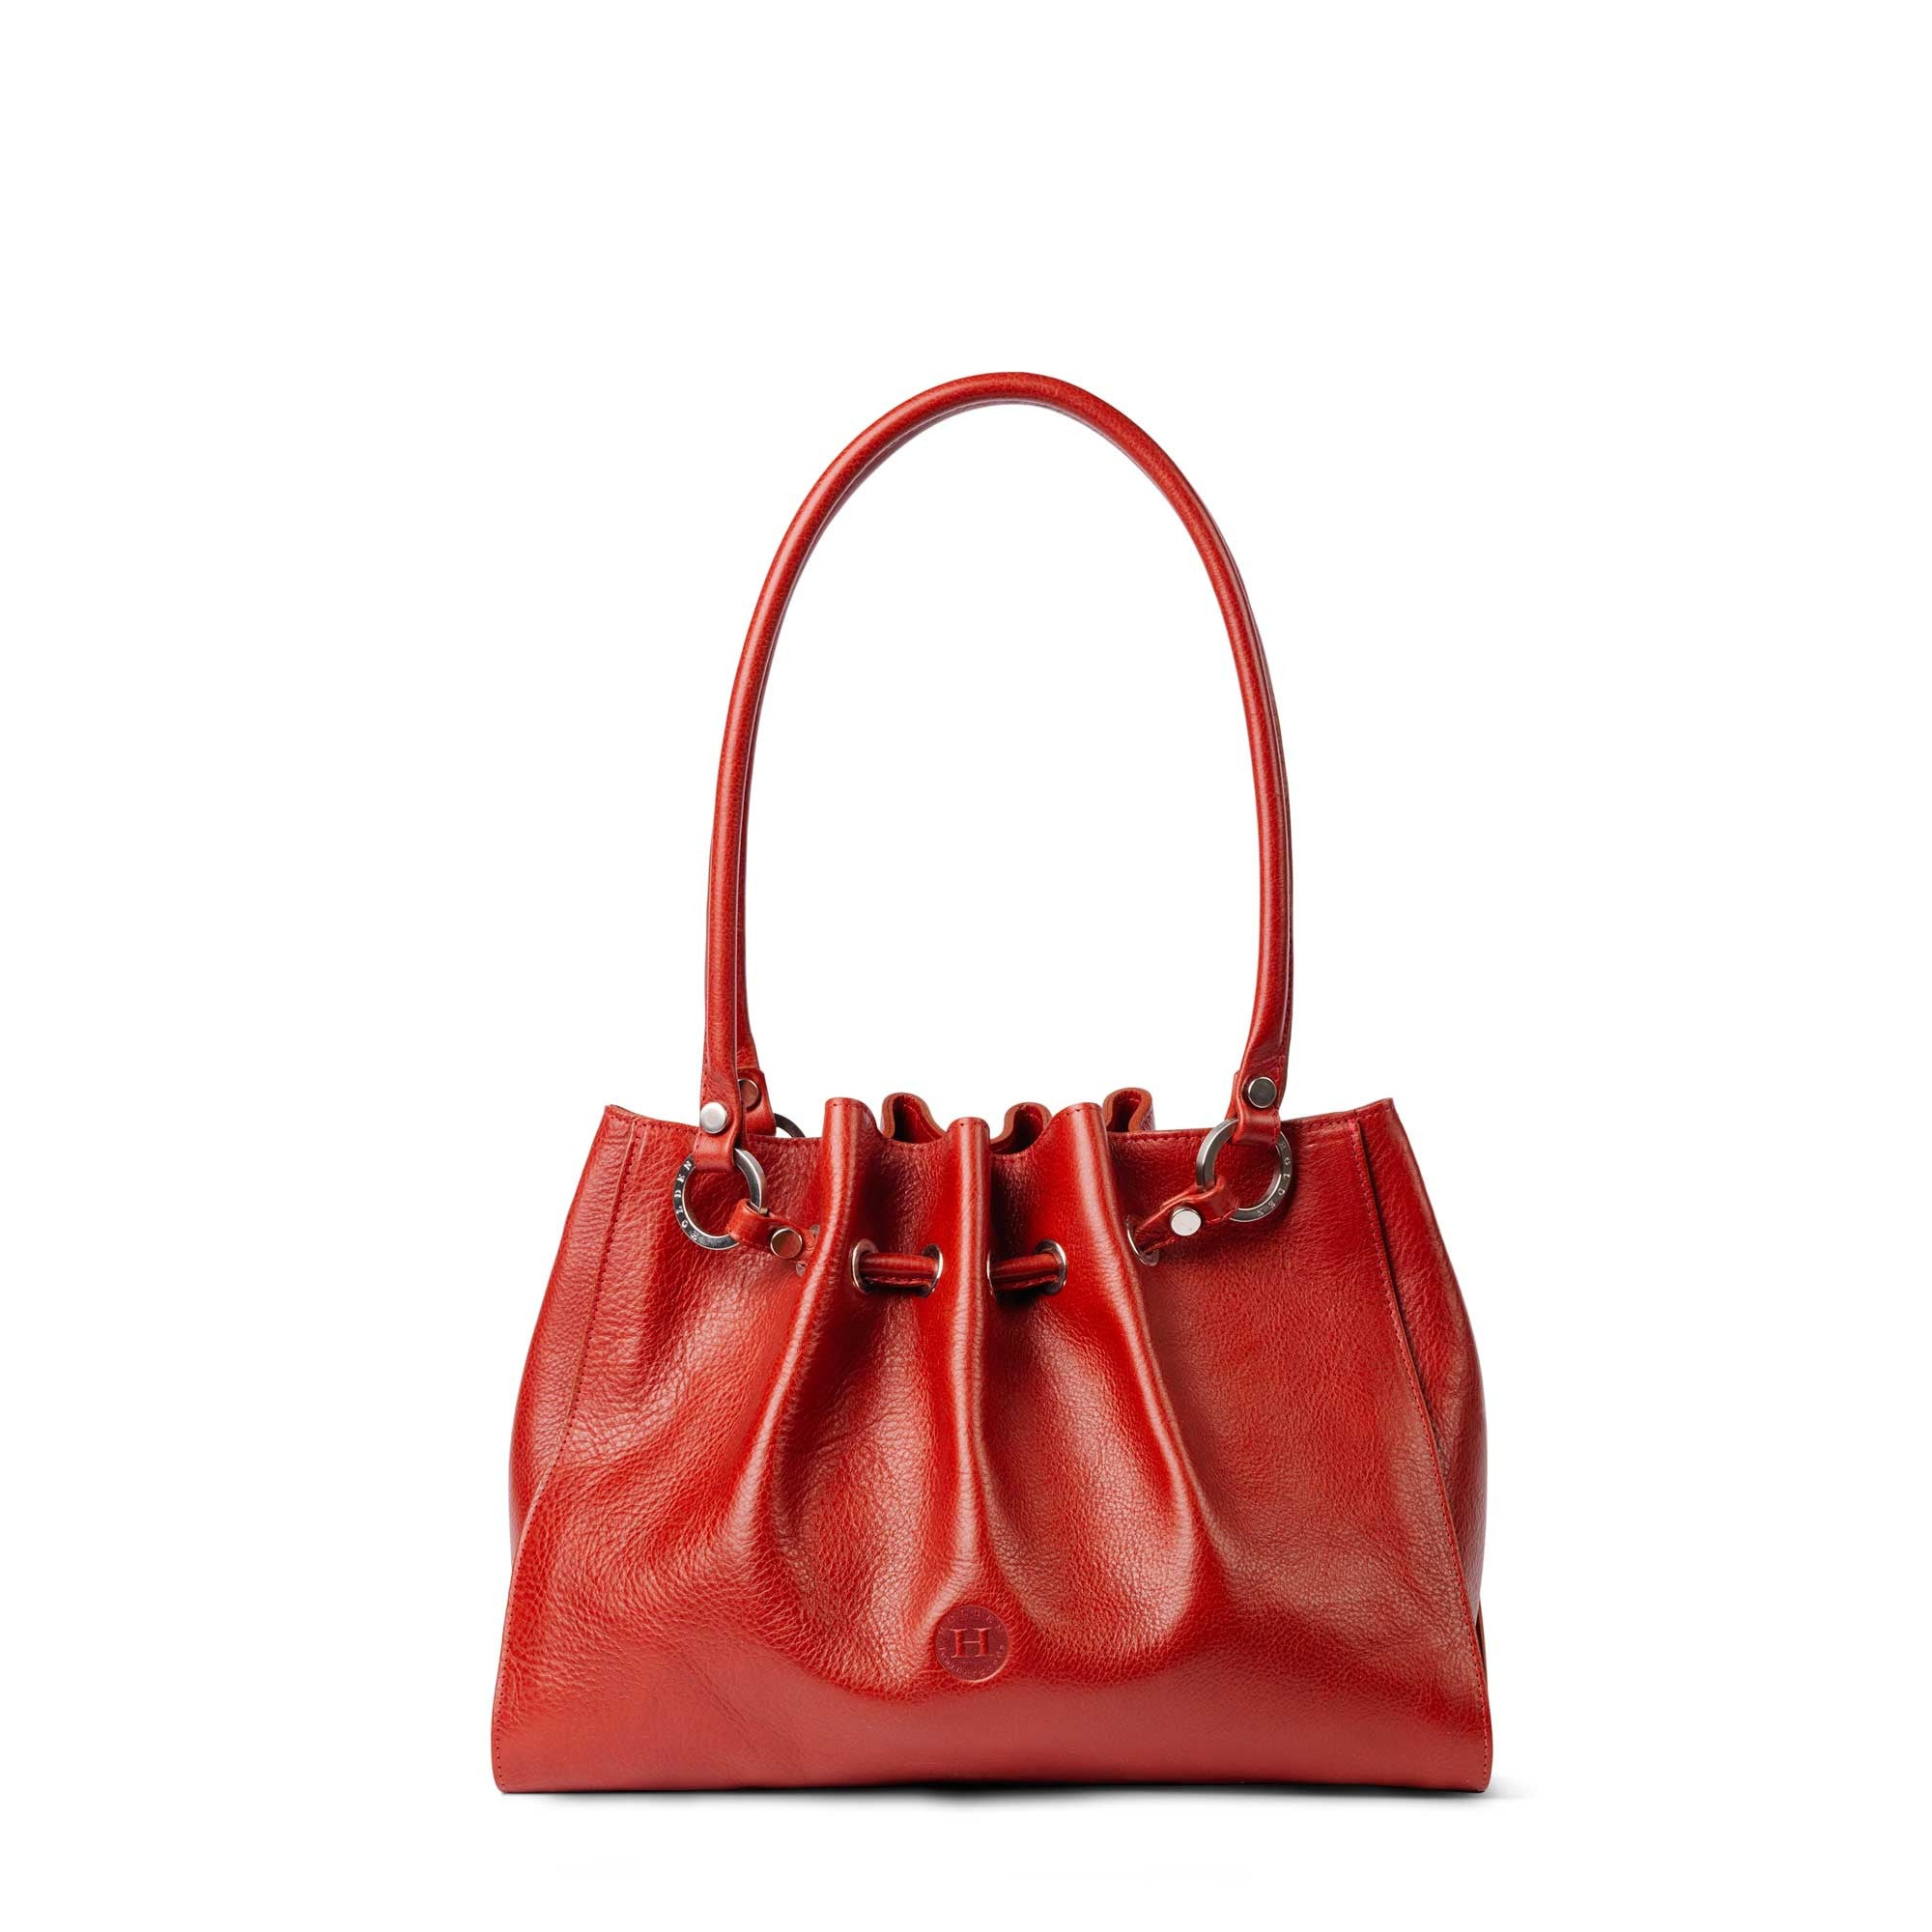 Siobhan Medium Leather Tote Red - Holden Leathergoods, leather bags handmade in Ireland